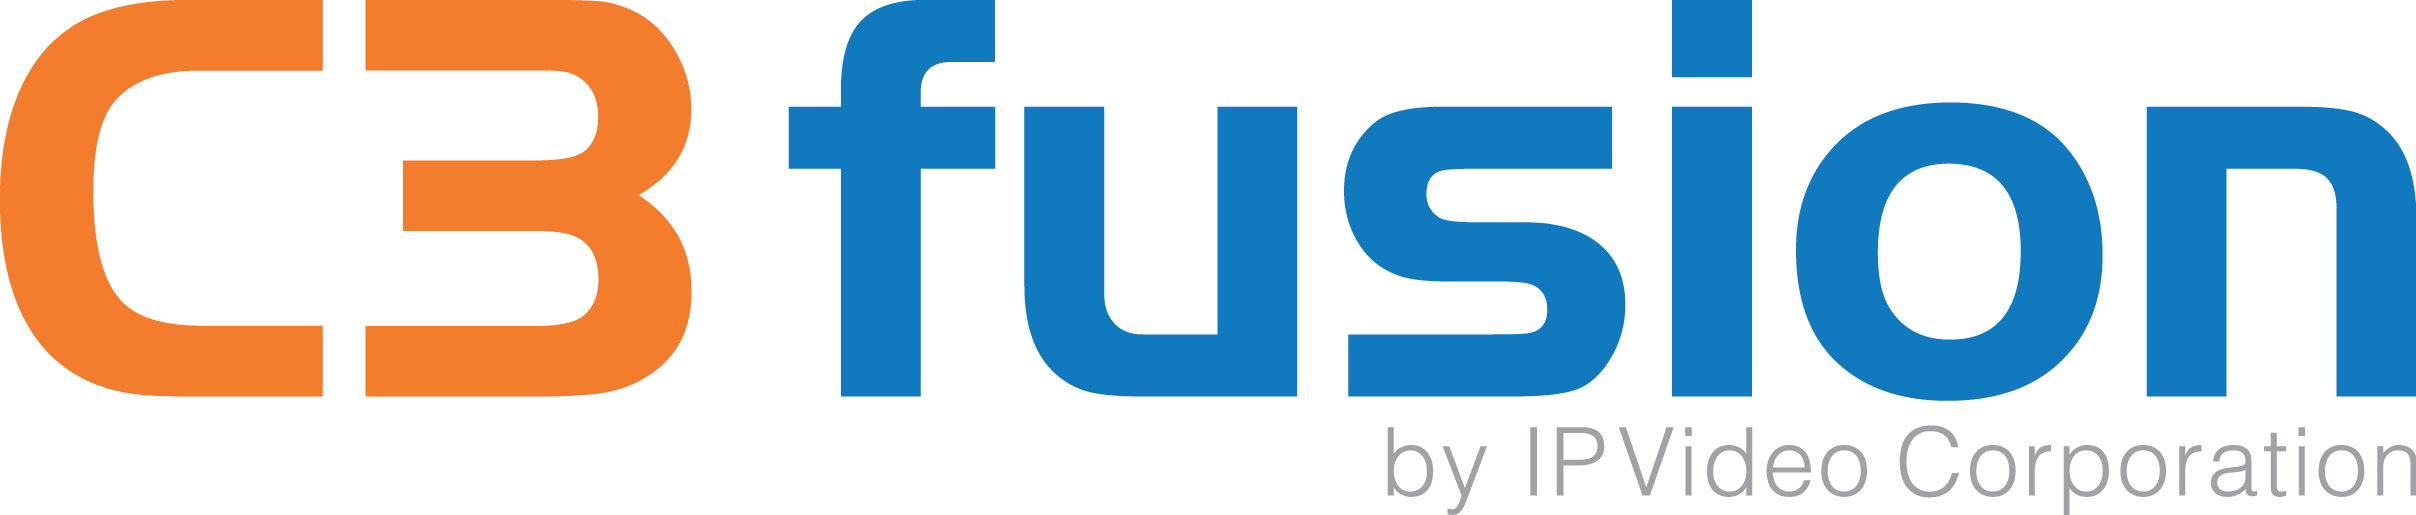 C3 Fusion Logo and Partner in Video Security